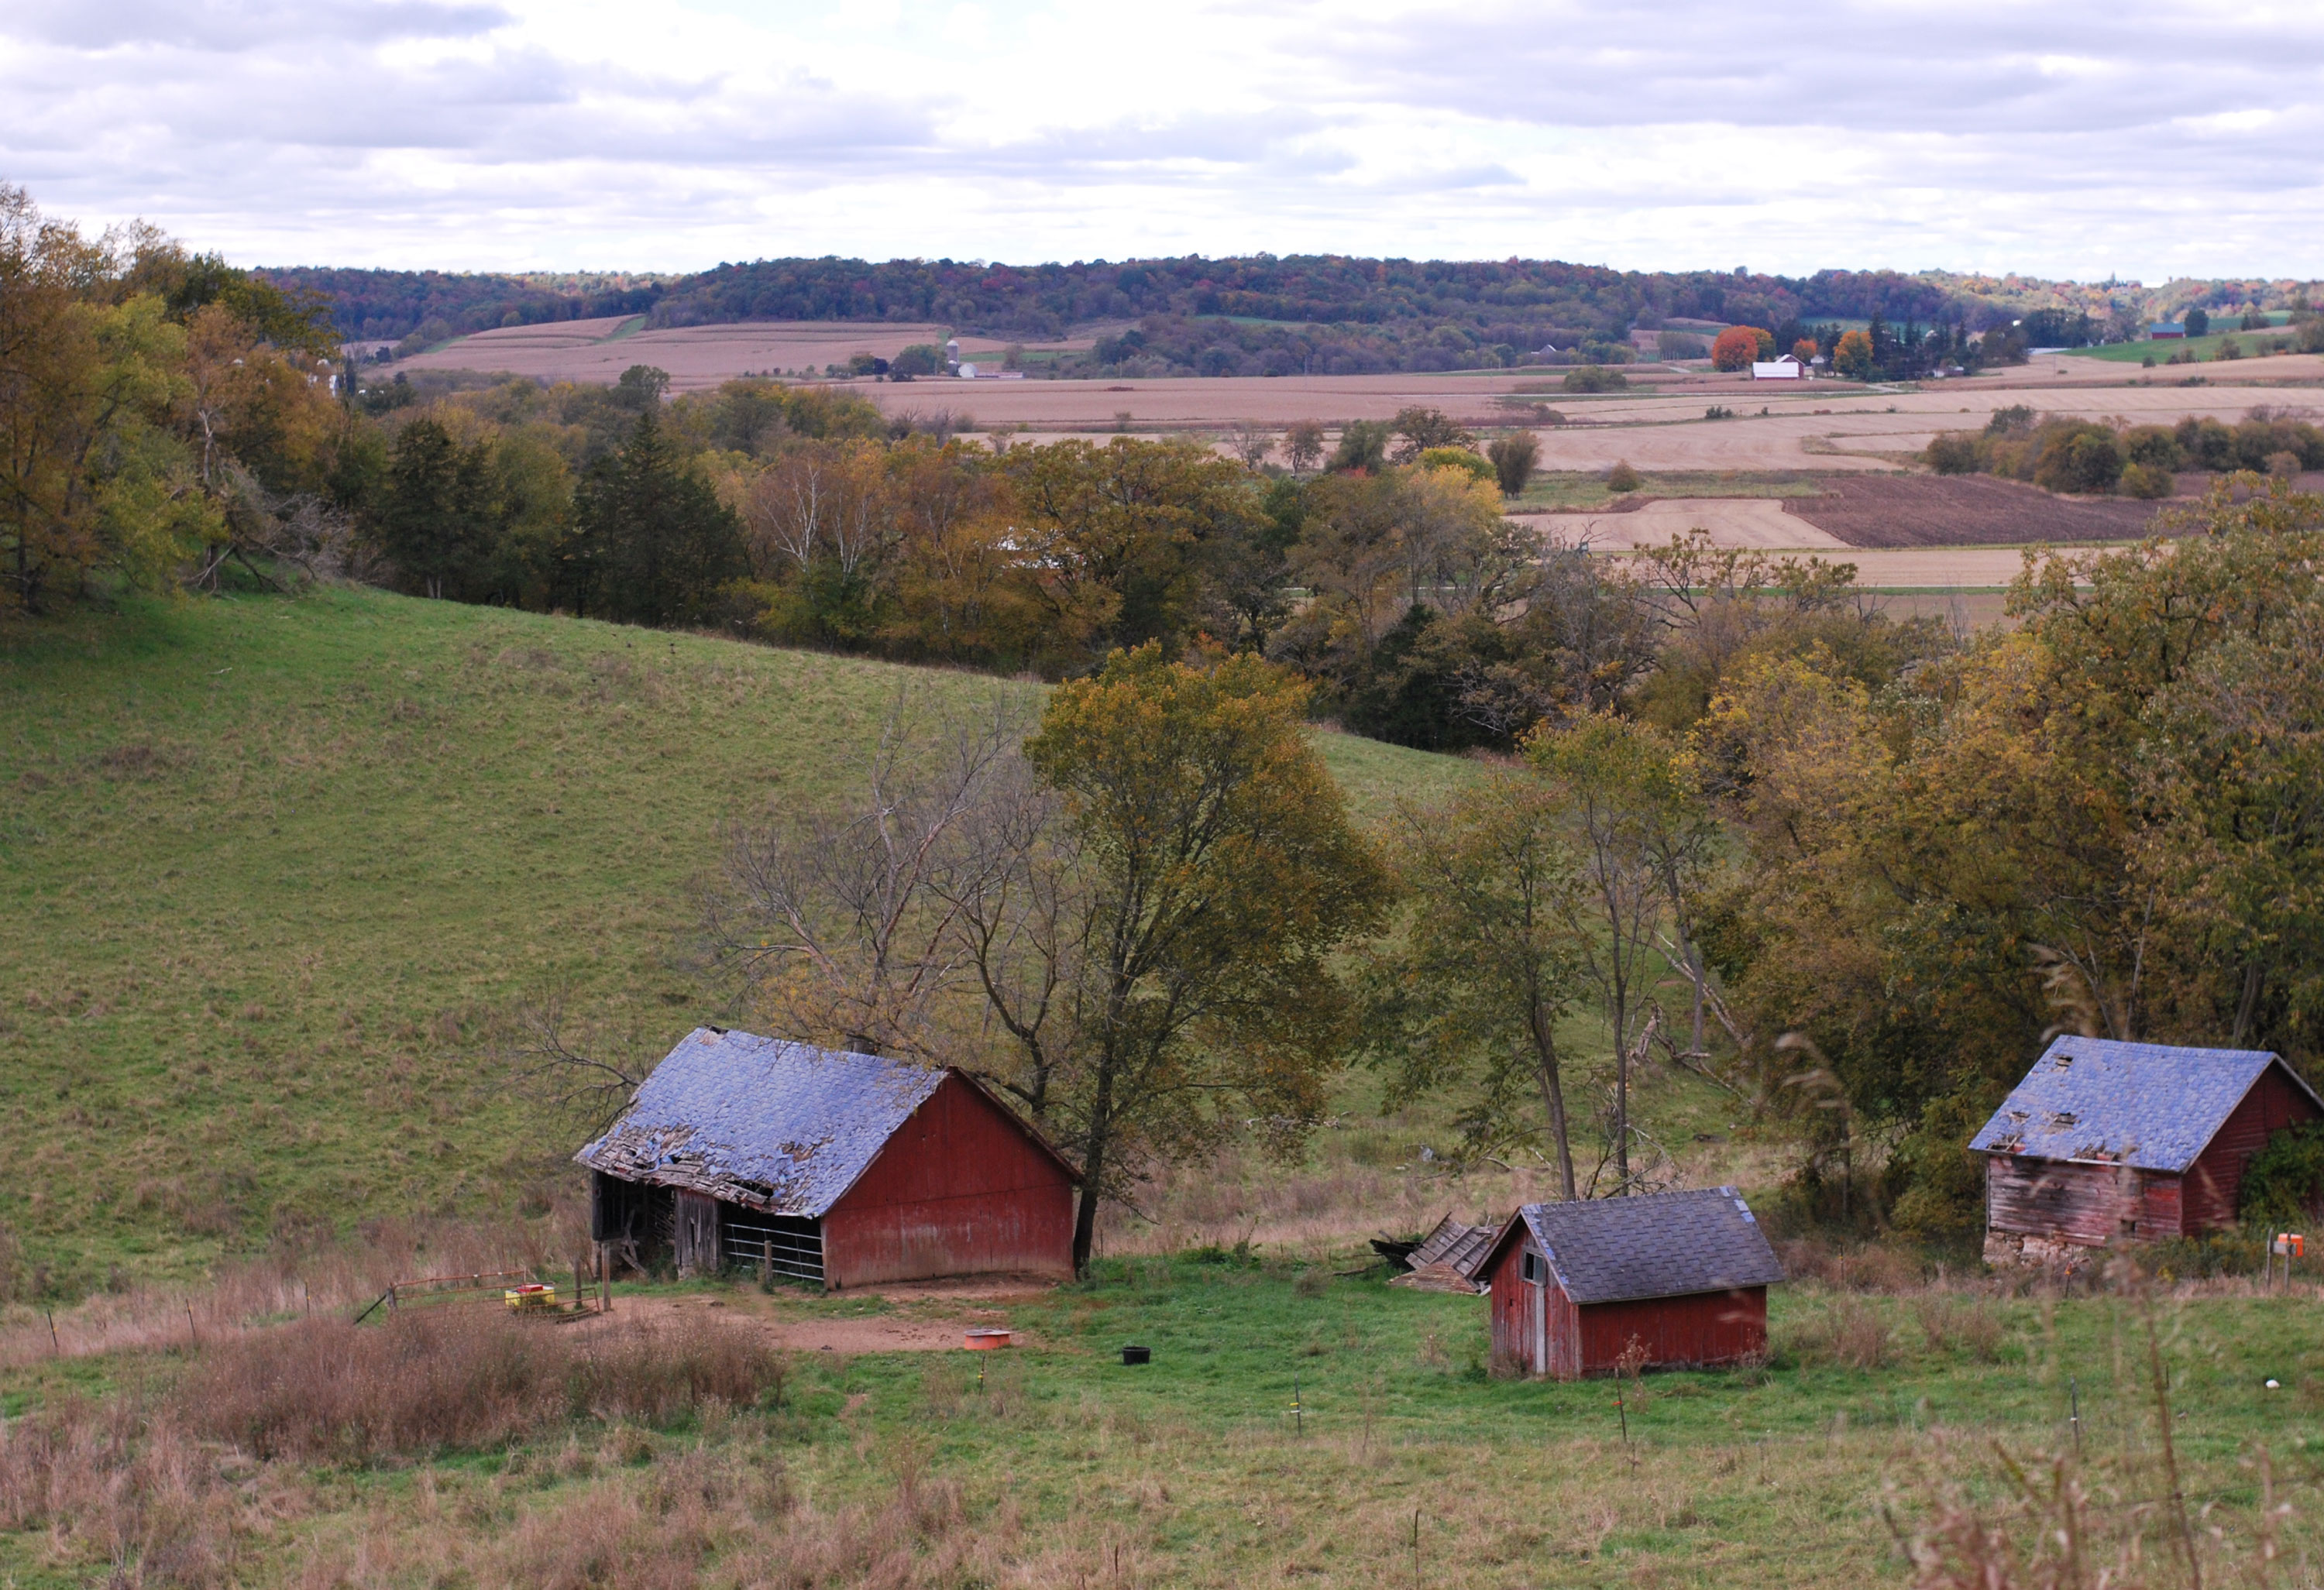 Farm structures in Sauk County, Wisconsin